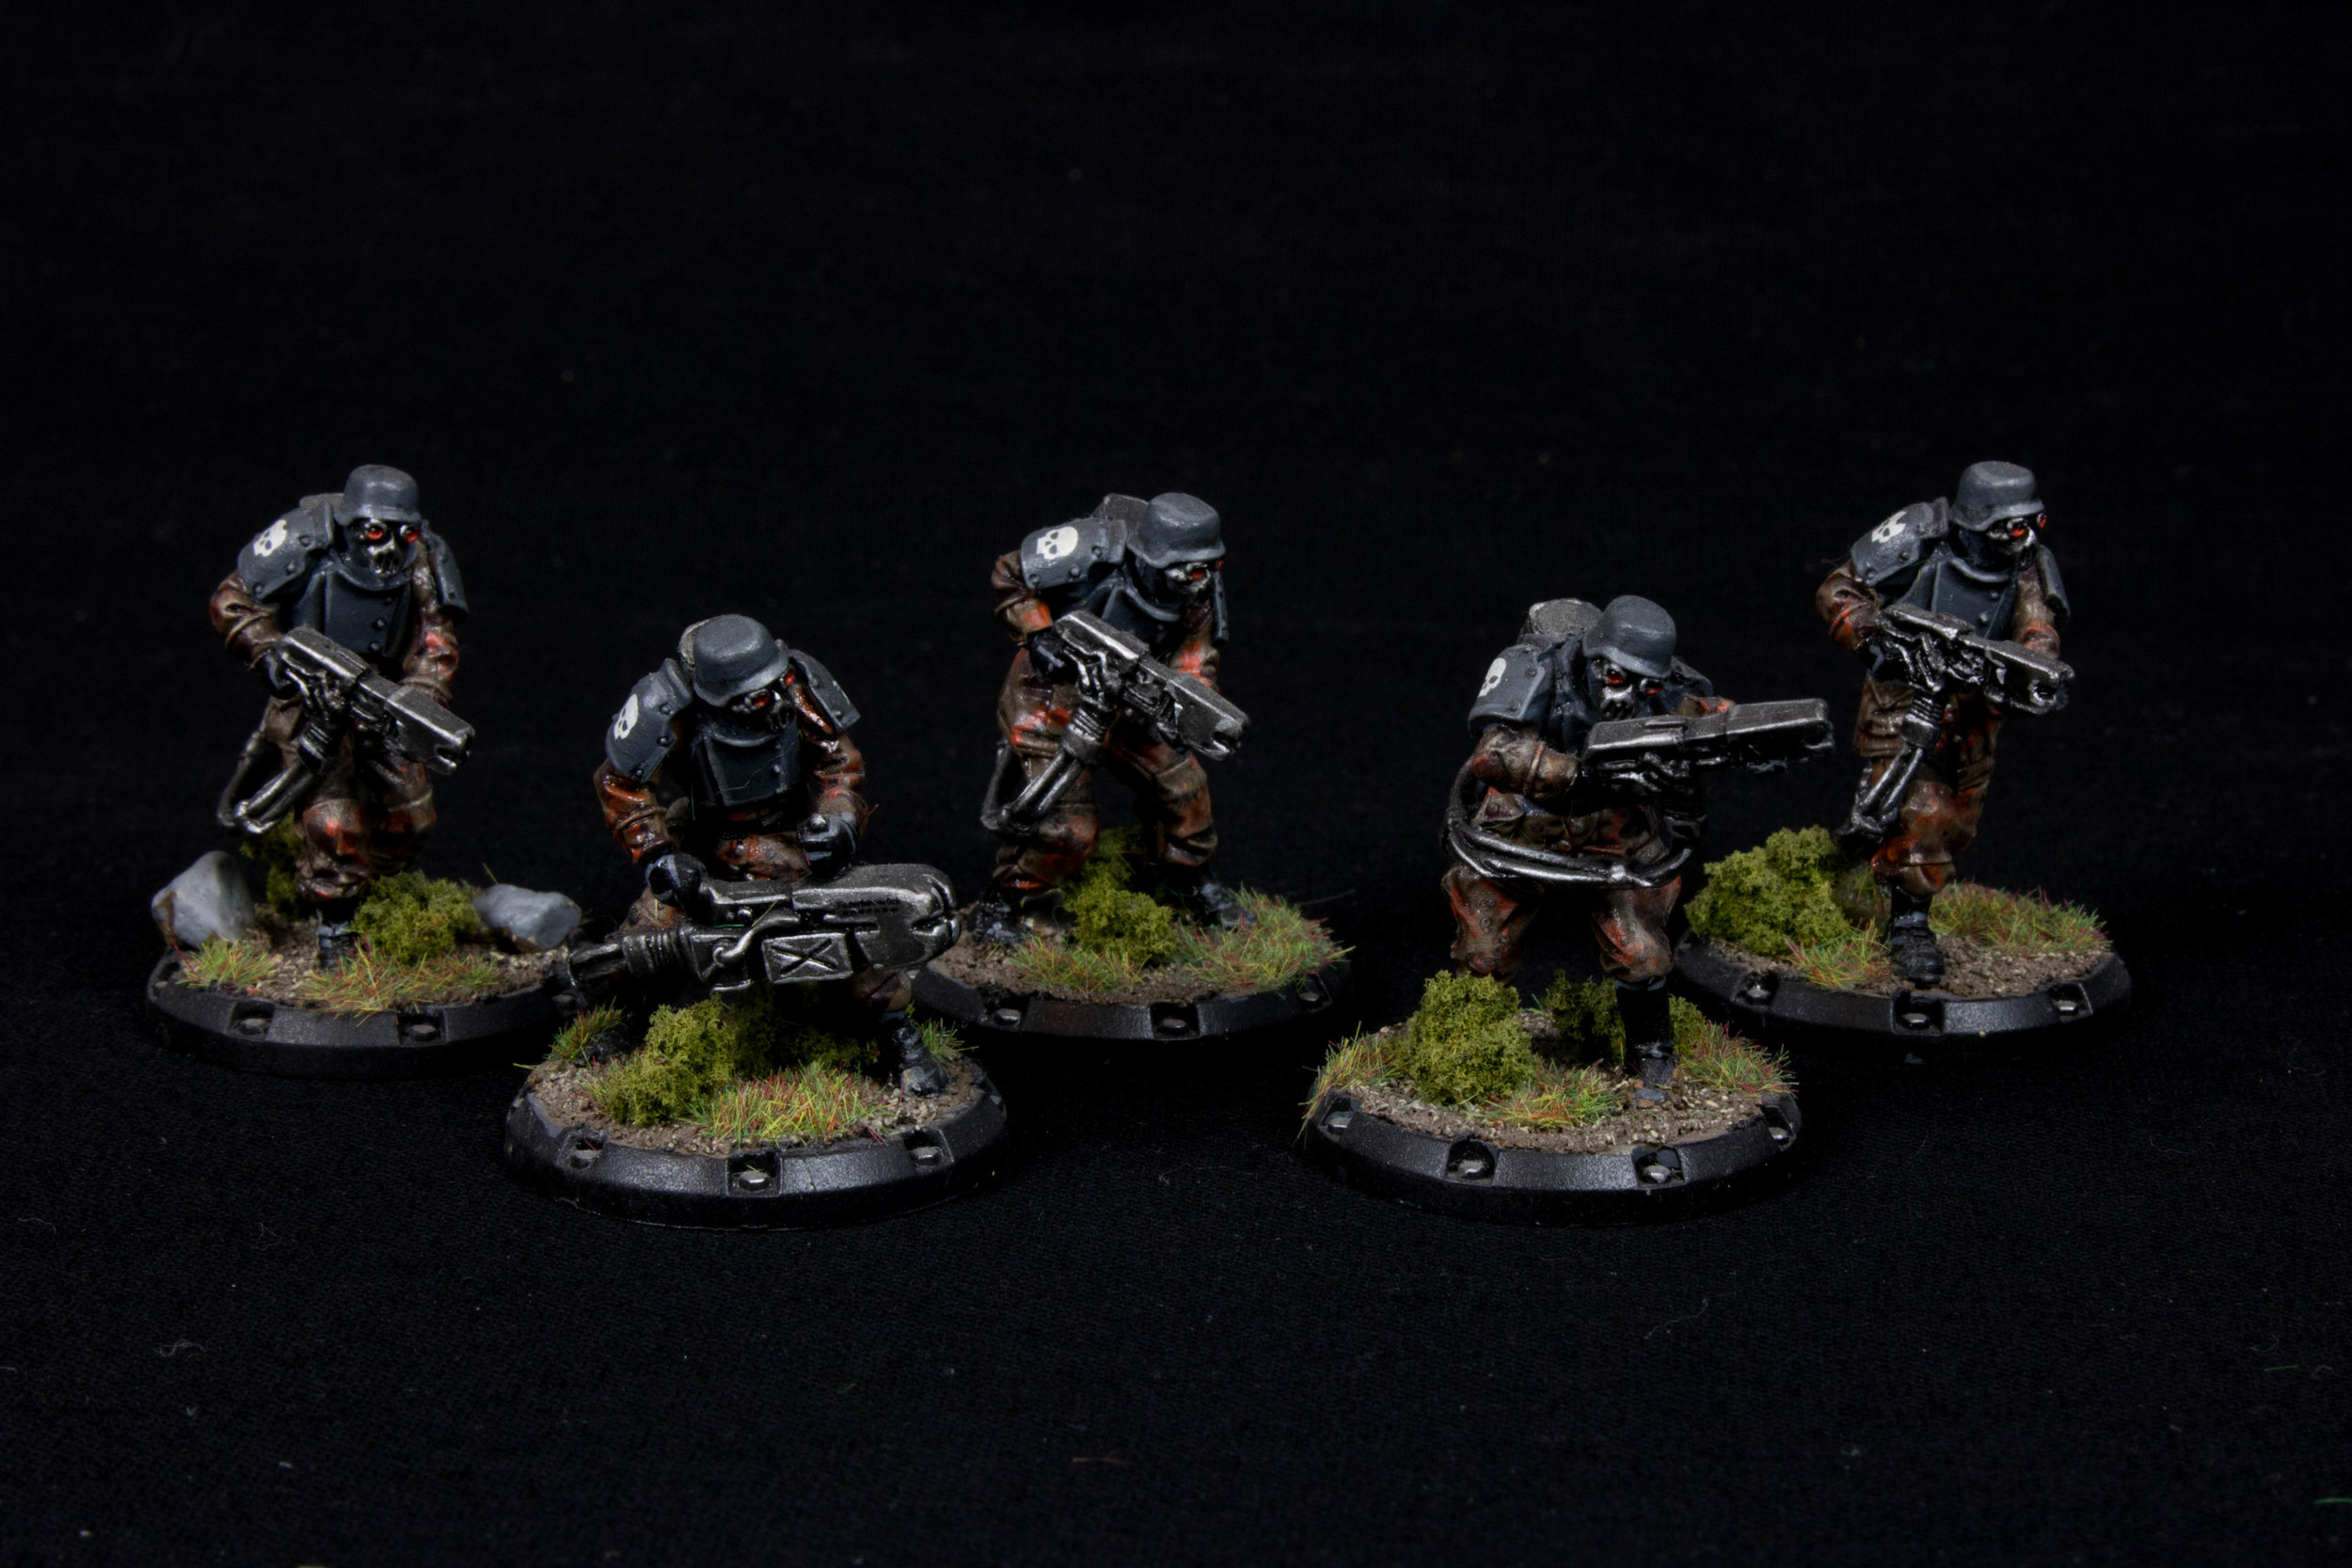 Dust Tactics WWII Warfare Germans Americans Axis Allies Bolt Action 28mm Alternate WWII-10.jpg